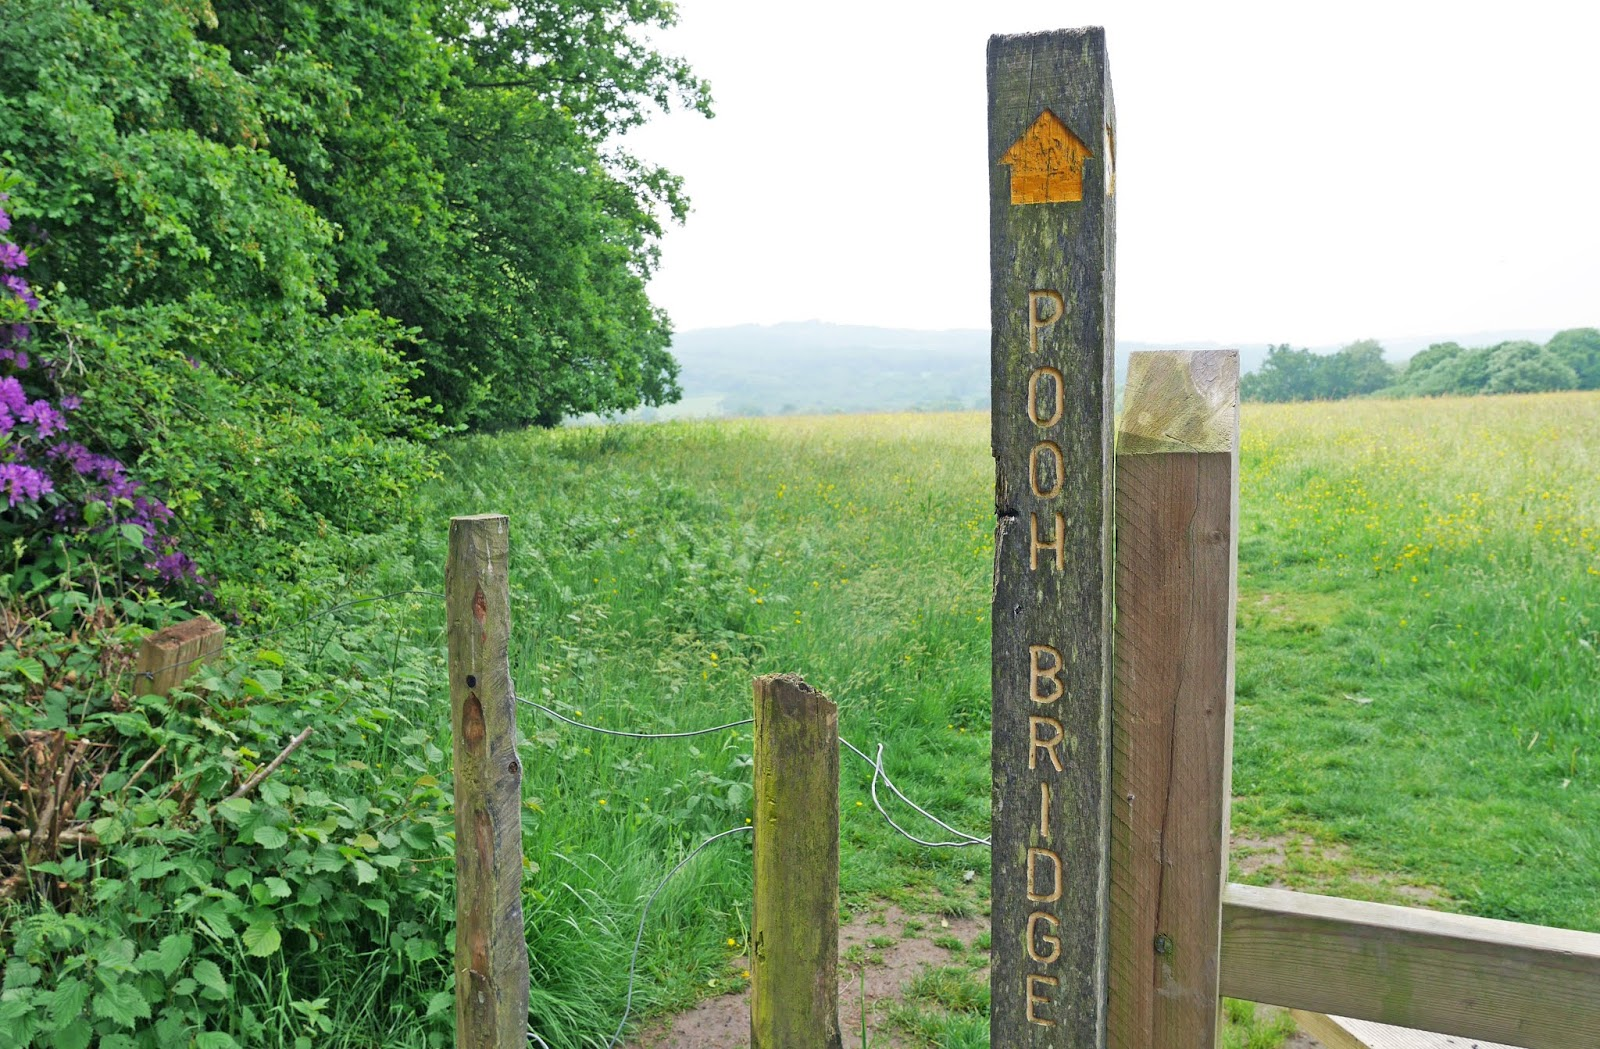 Footpath sign in the direction of Pooh Bridge, Ashdown Forest